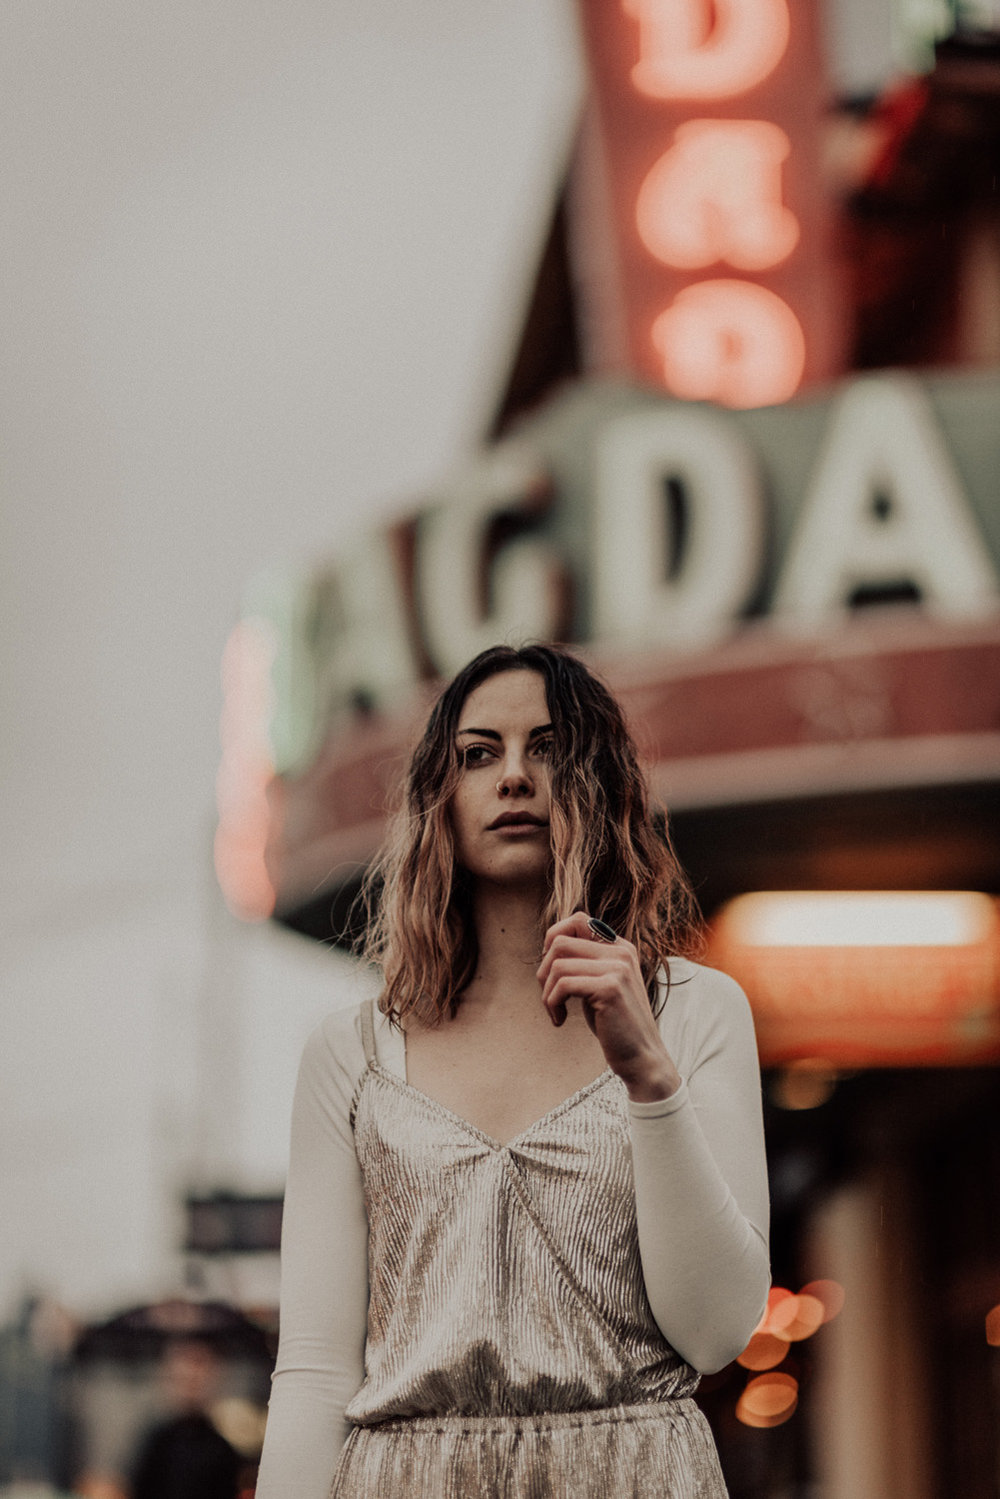 KyleWillisPhoto-Kyle-Willis-Photography-Portland-Oregon-Portrait-Photographer-Hawthorne-Downtown-Records-Jocelyn-Bourlier-PNW-Free-People-Boho-Vintage